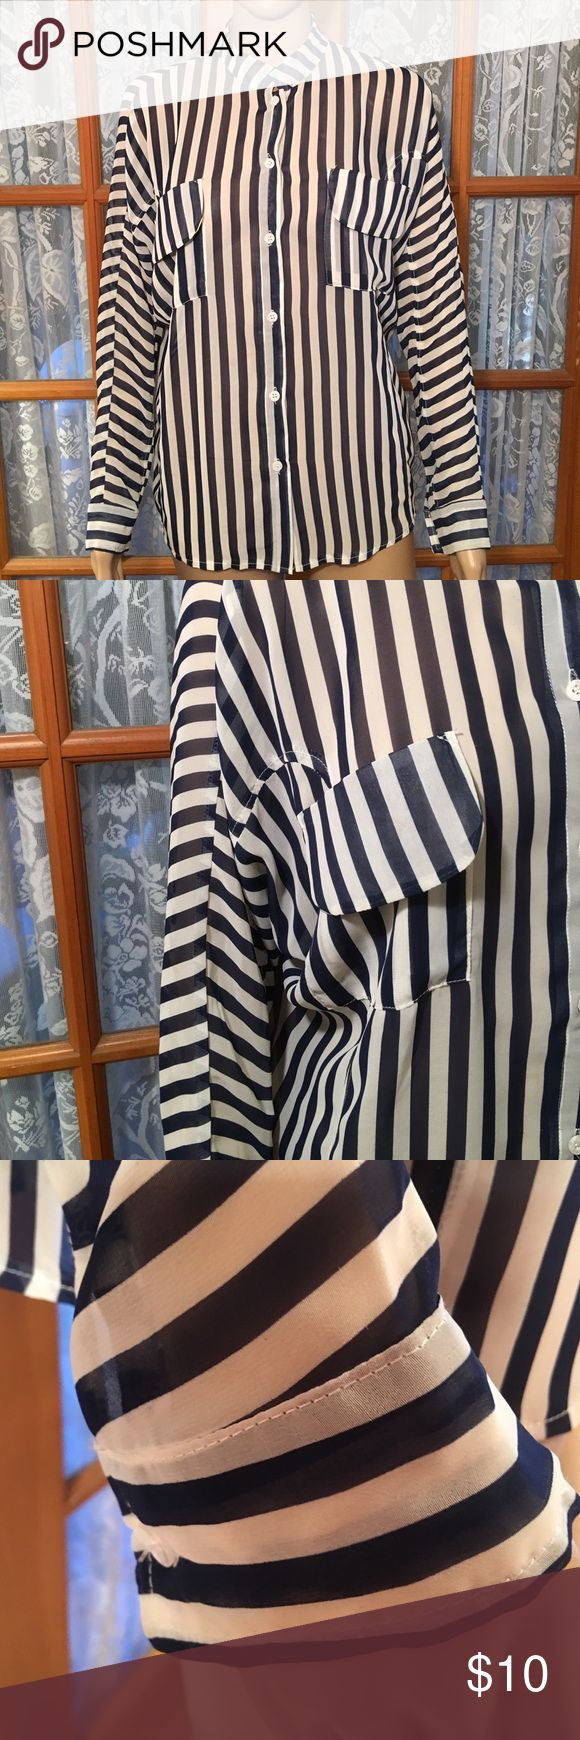 "UmGee USASheer Navy Blue & White LS Top Really nice oversized small sheer top. 2 chest pockets. Button sleeves. Bust is 46"". Length is 25"". Sleeves are batwing. It is in excellent condition and comes from my non smoking home. umGhee Tops Button Down Shirts"